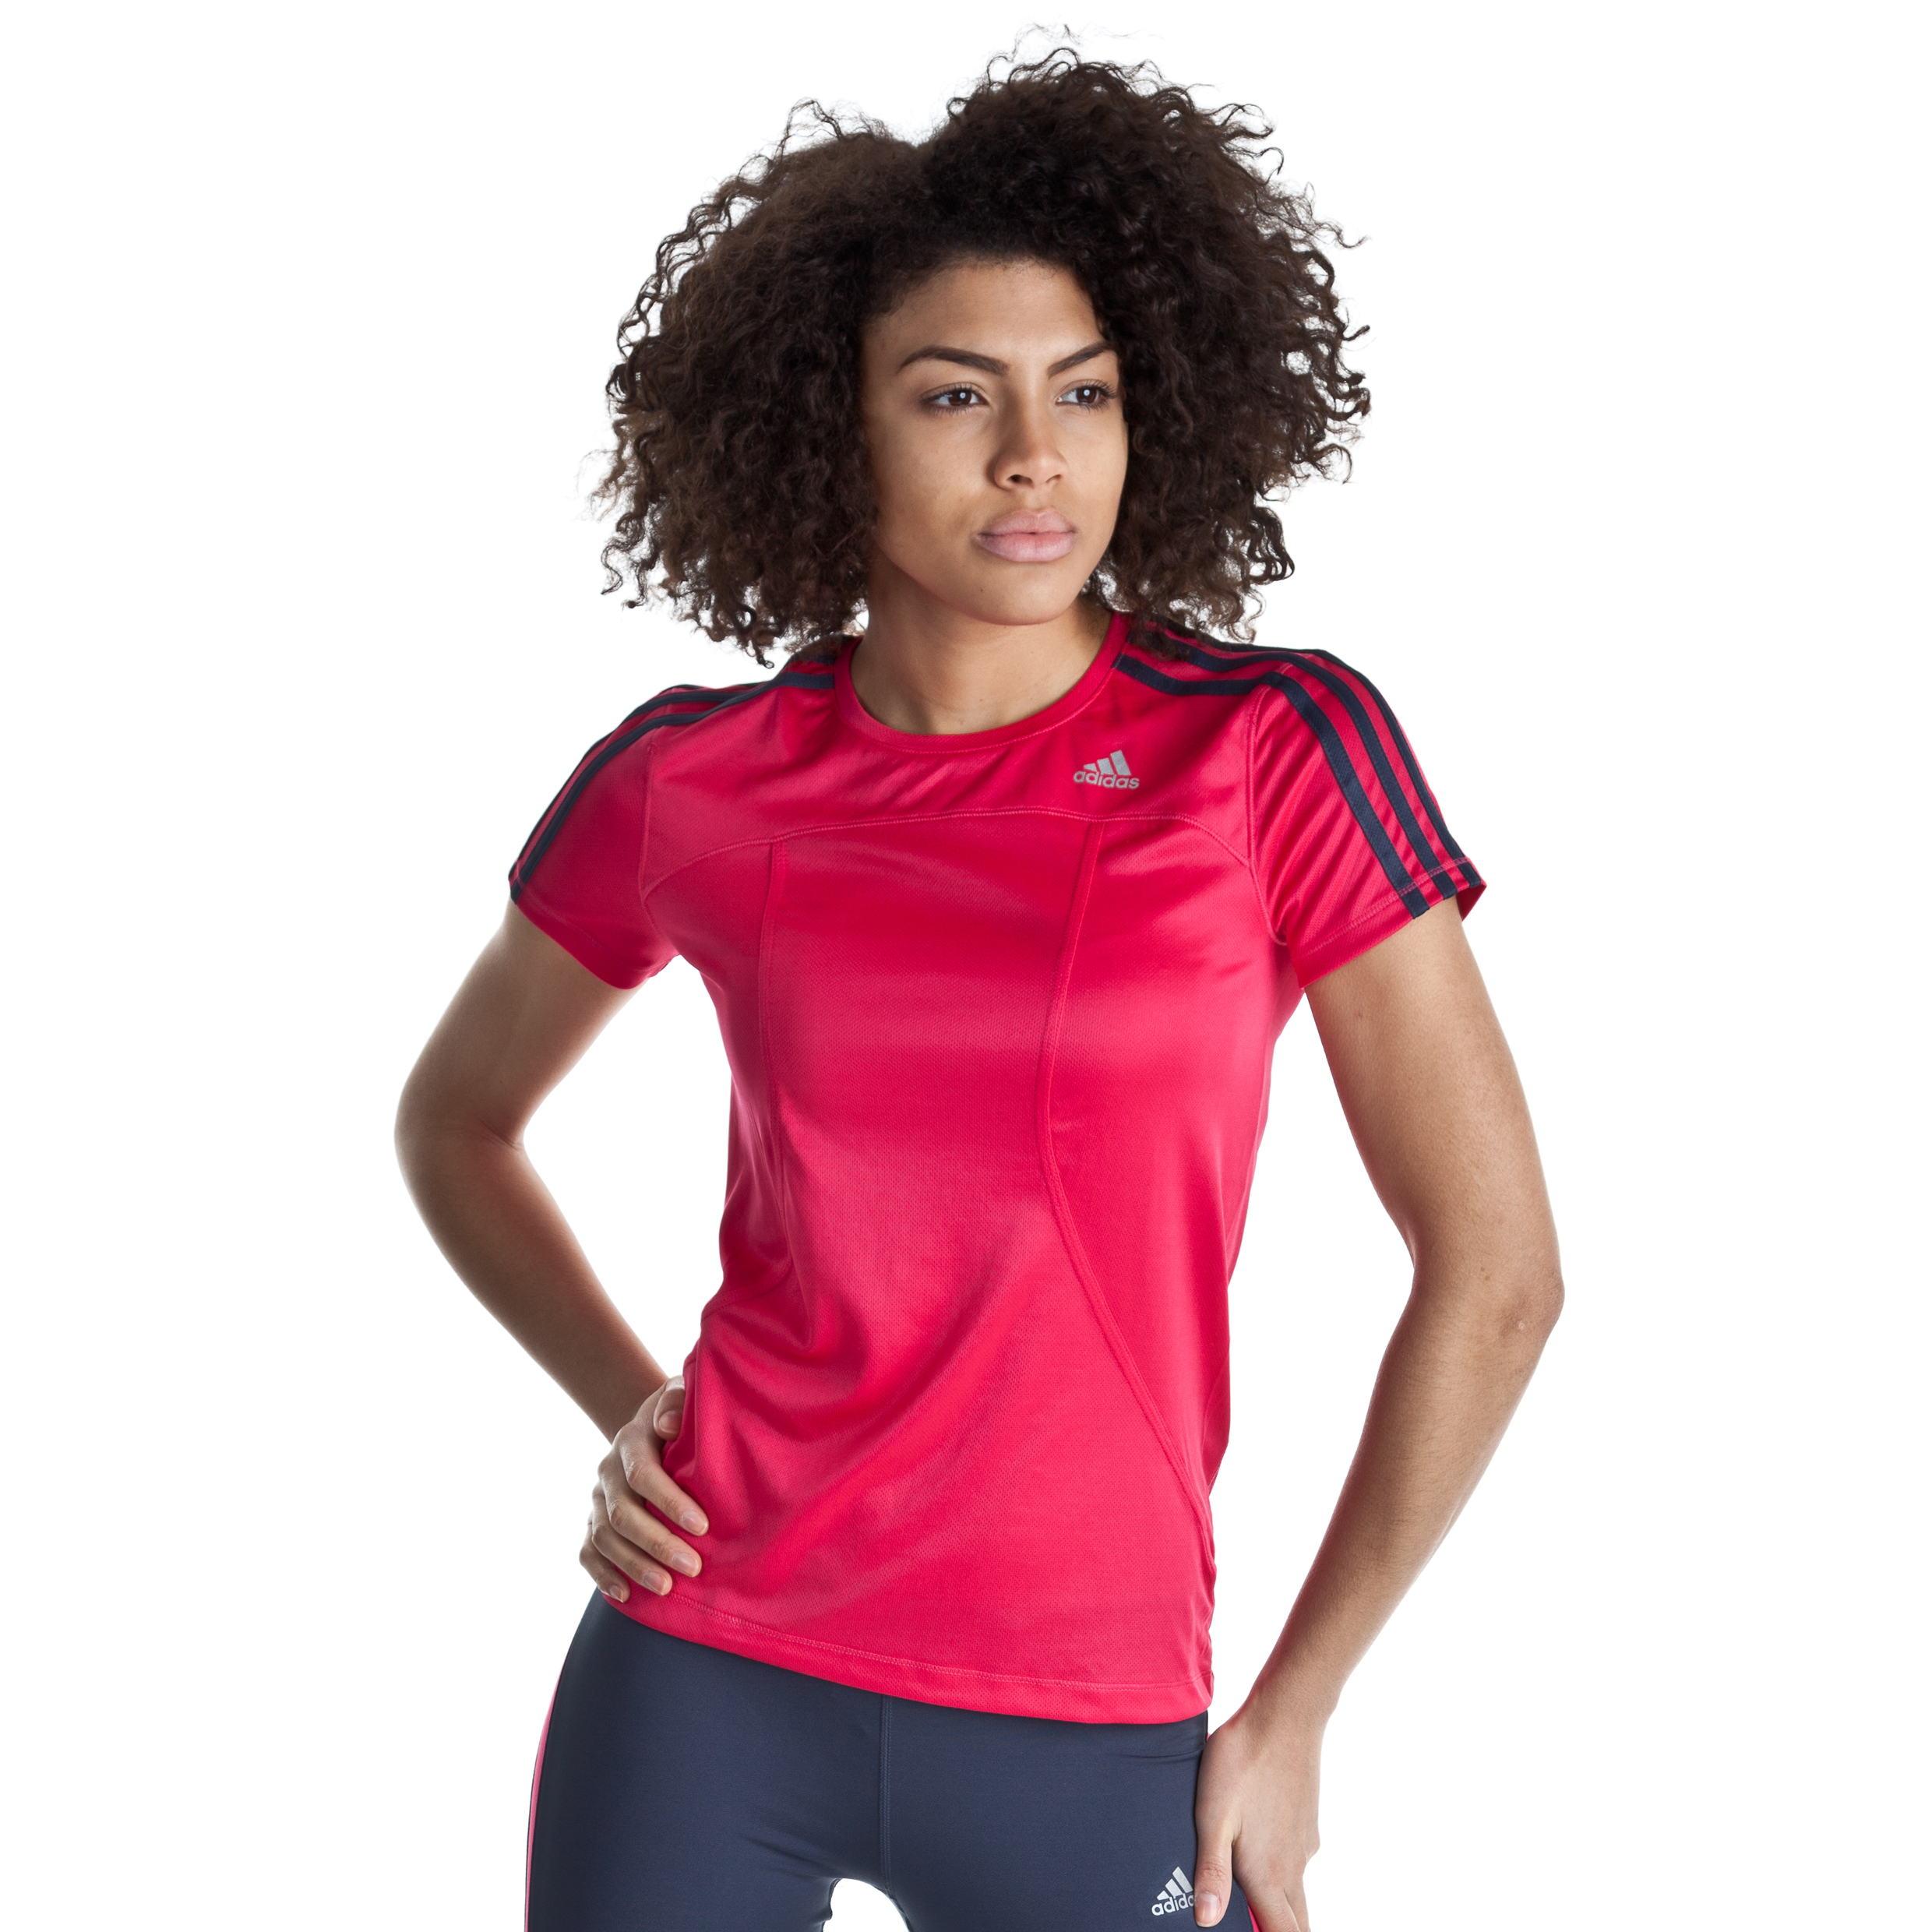 Adidas Response DS T-Shirt - Bright Pink/Urban Sky - Womens